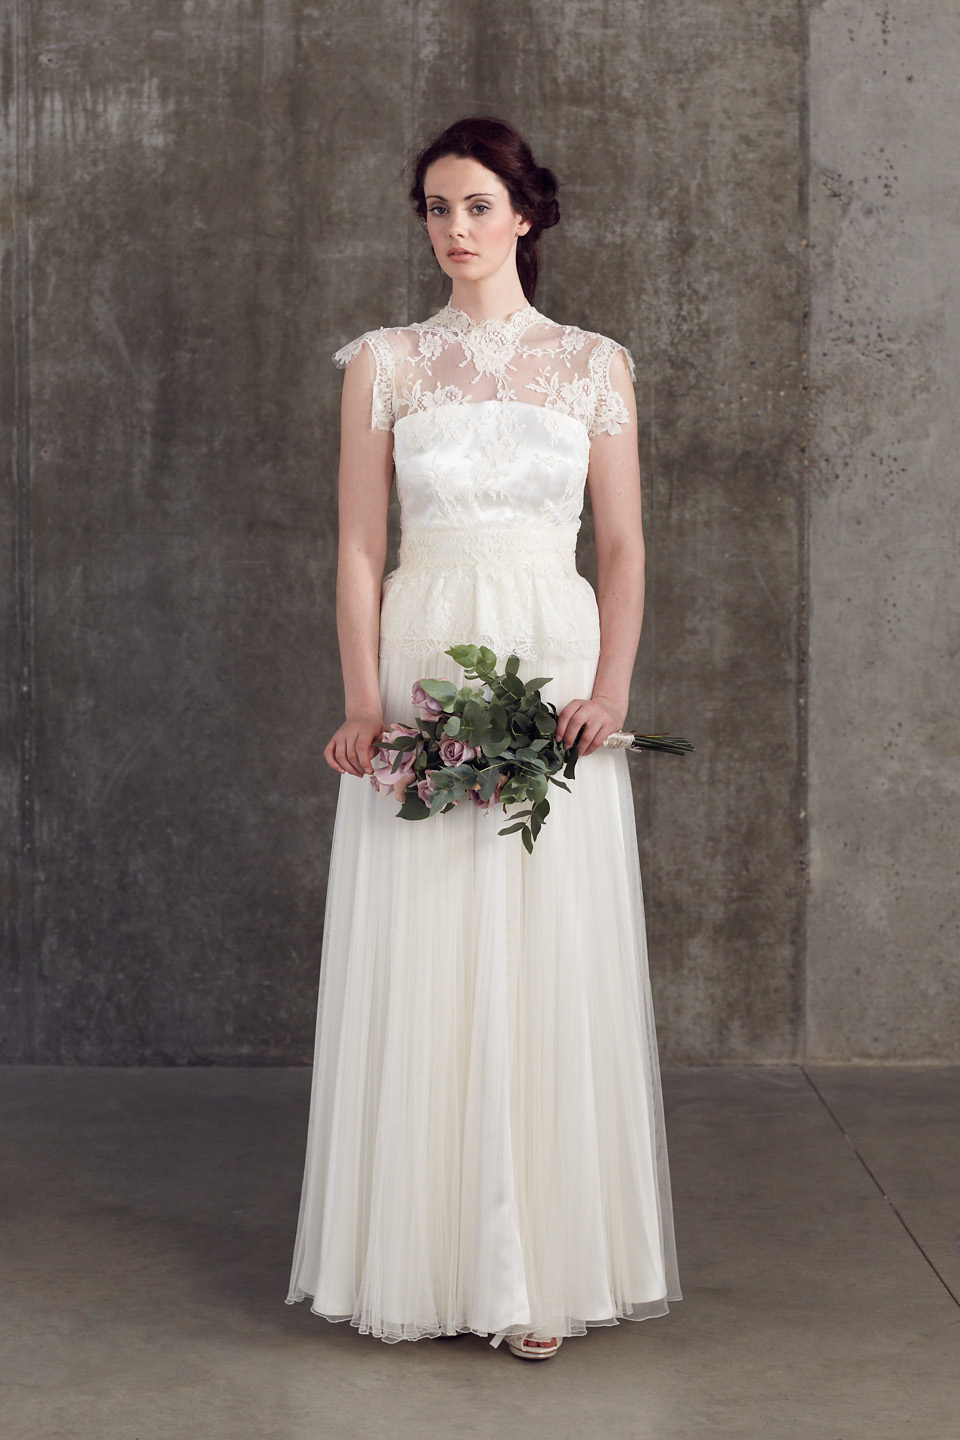 bridal separates sally lacock 2 piece wedding dresses 2 piece wedding dresses Bridal Separates by Sally Lacock An Exquisite and Elegant Collection of 2 Piece Wedding